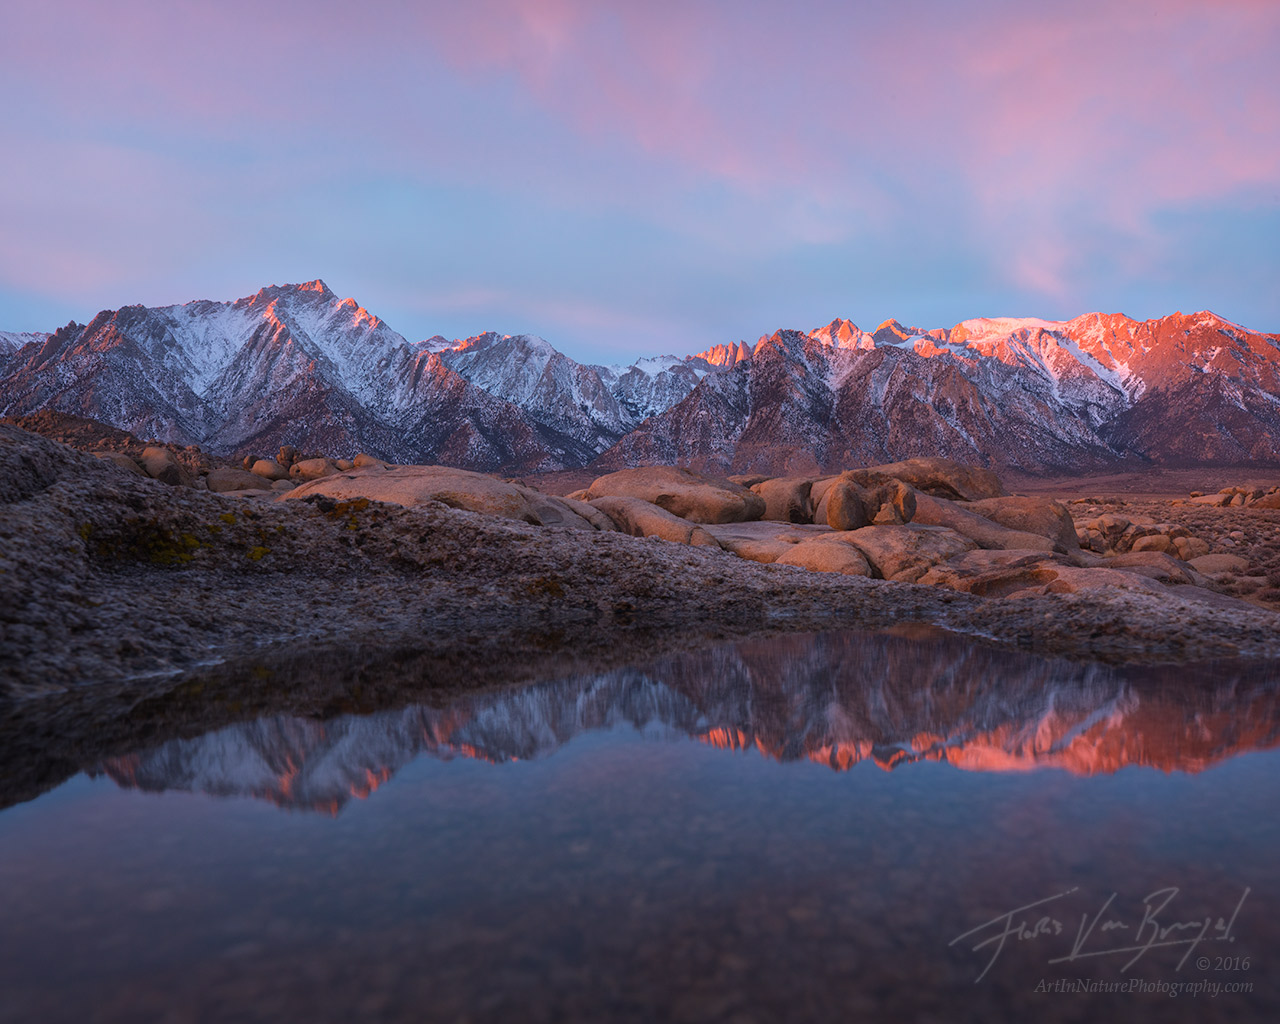 Fall Wallpaper Lake Creative Owens Valley Images California Art In Nature